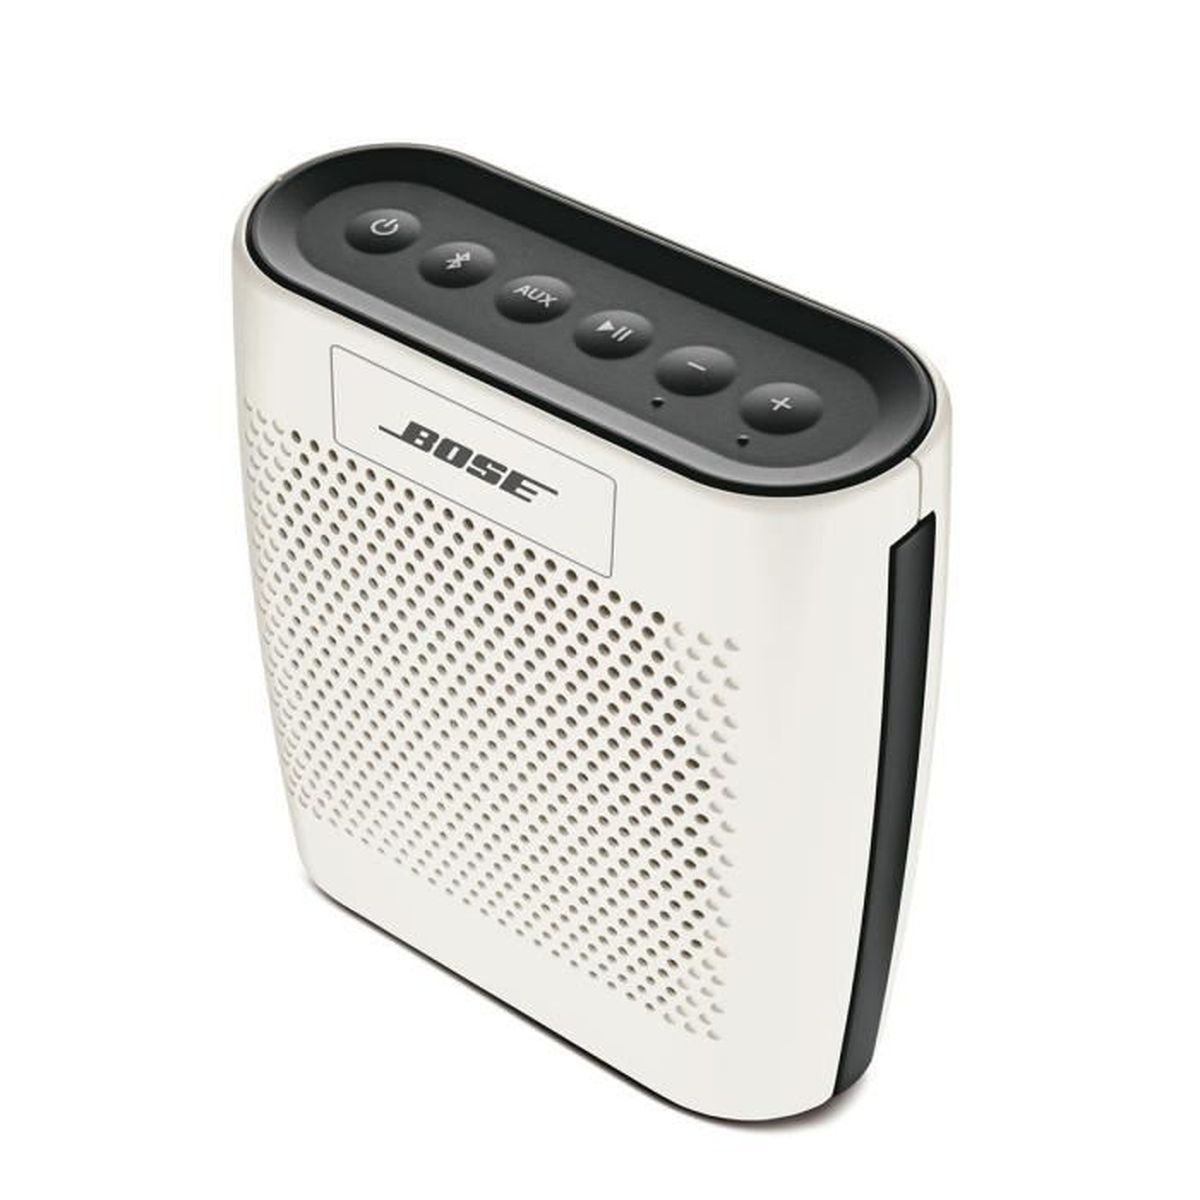 enceinte bluetooth bose soundlink colour blanc enceintes bluetooth avis et prix pas cher. Black Bedroom Furniture Sets. Home Design Ideas